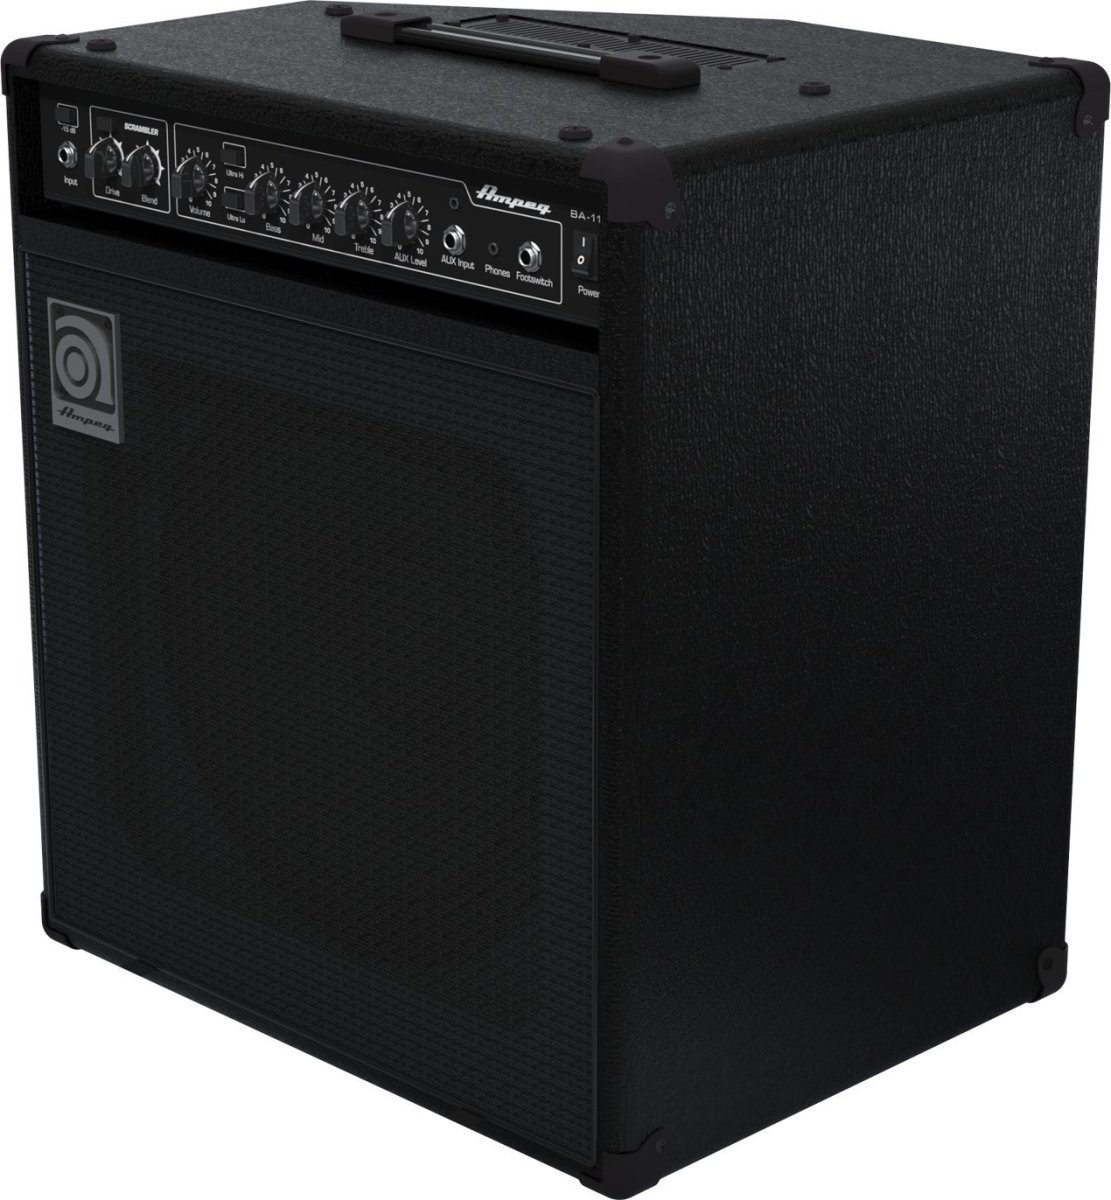 Best Bass Combo Amp Under $300